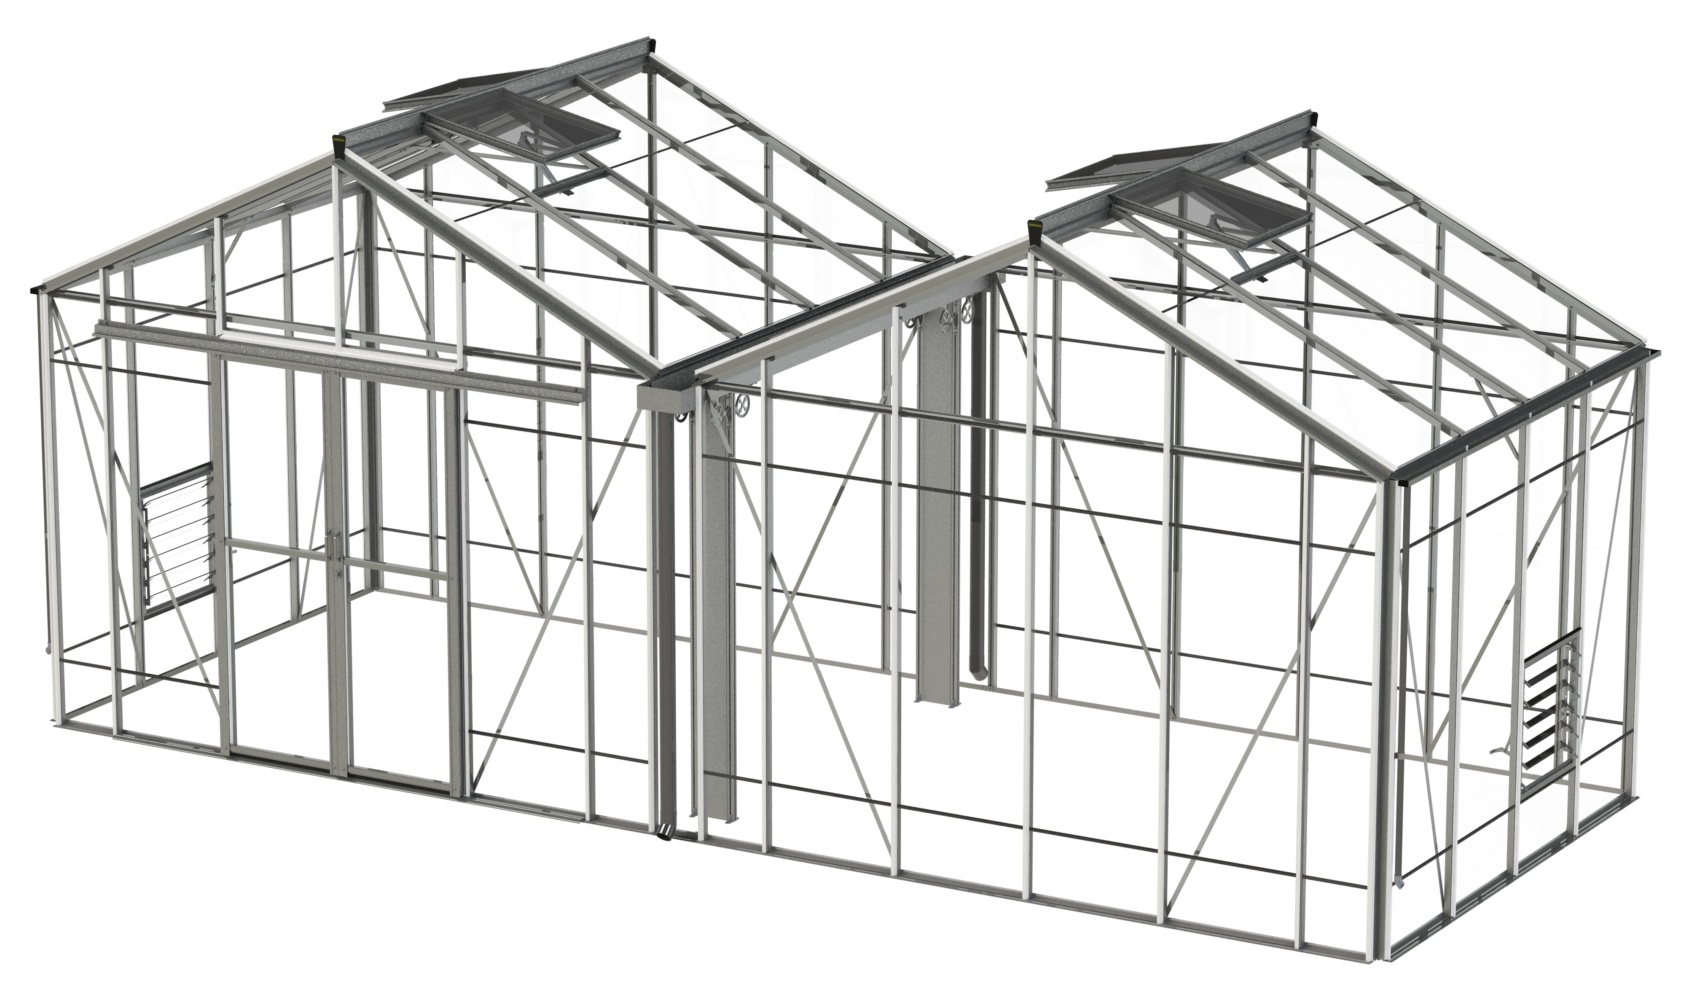 Rosette Reach Double 20 x 8 greenhouse by Robinsons